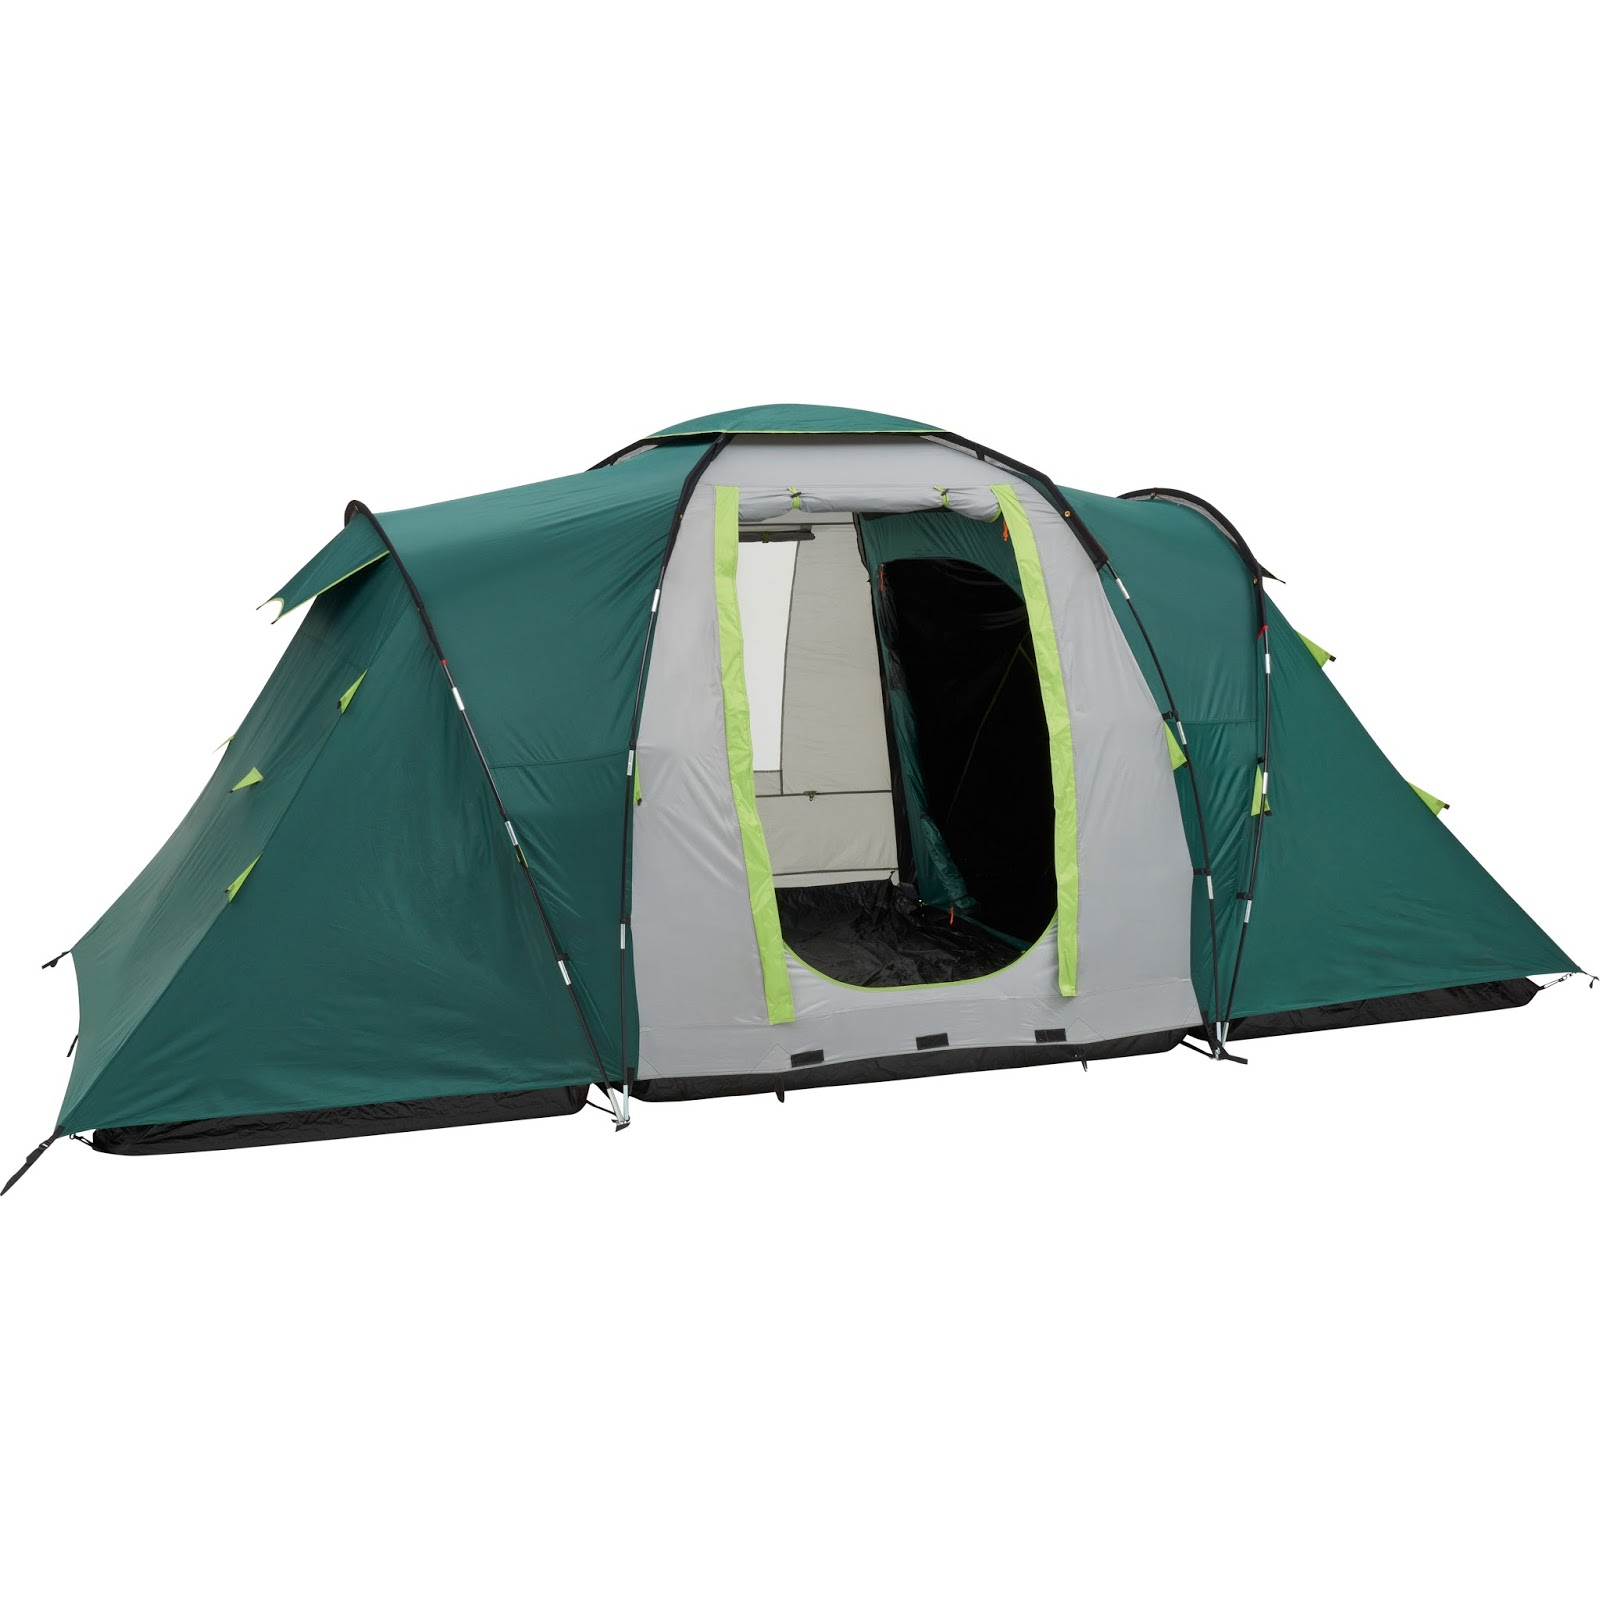 ... vis a vis (Bedrooms Either side of a central living area) design the Coleman Spruce Falls 4 offers the weekend or festival c&er a versatile tent.  sc 1 st  IBEX C&ing Blog & IBEX Camping Blog: Coleman Tents for 2017